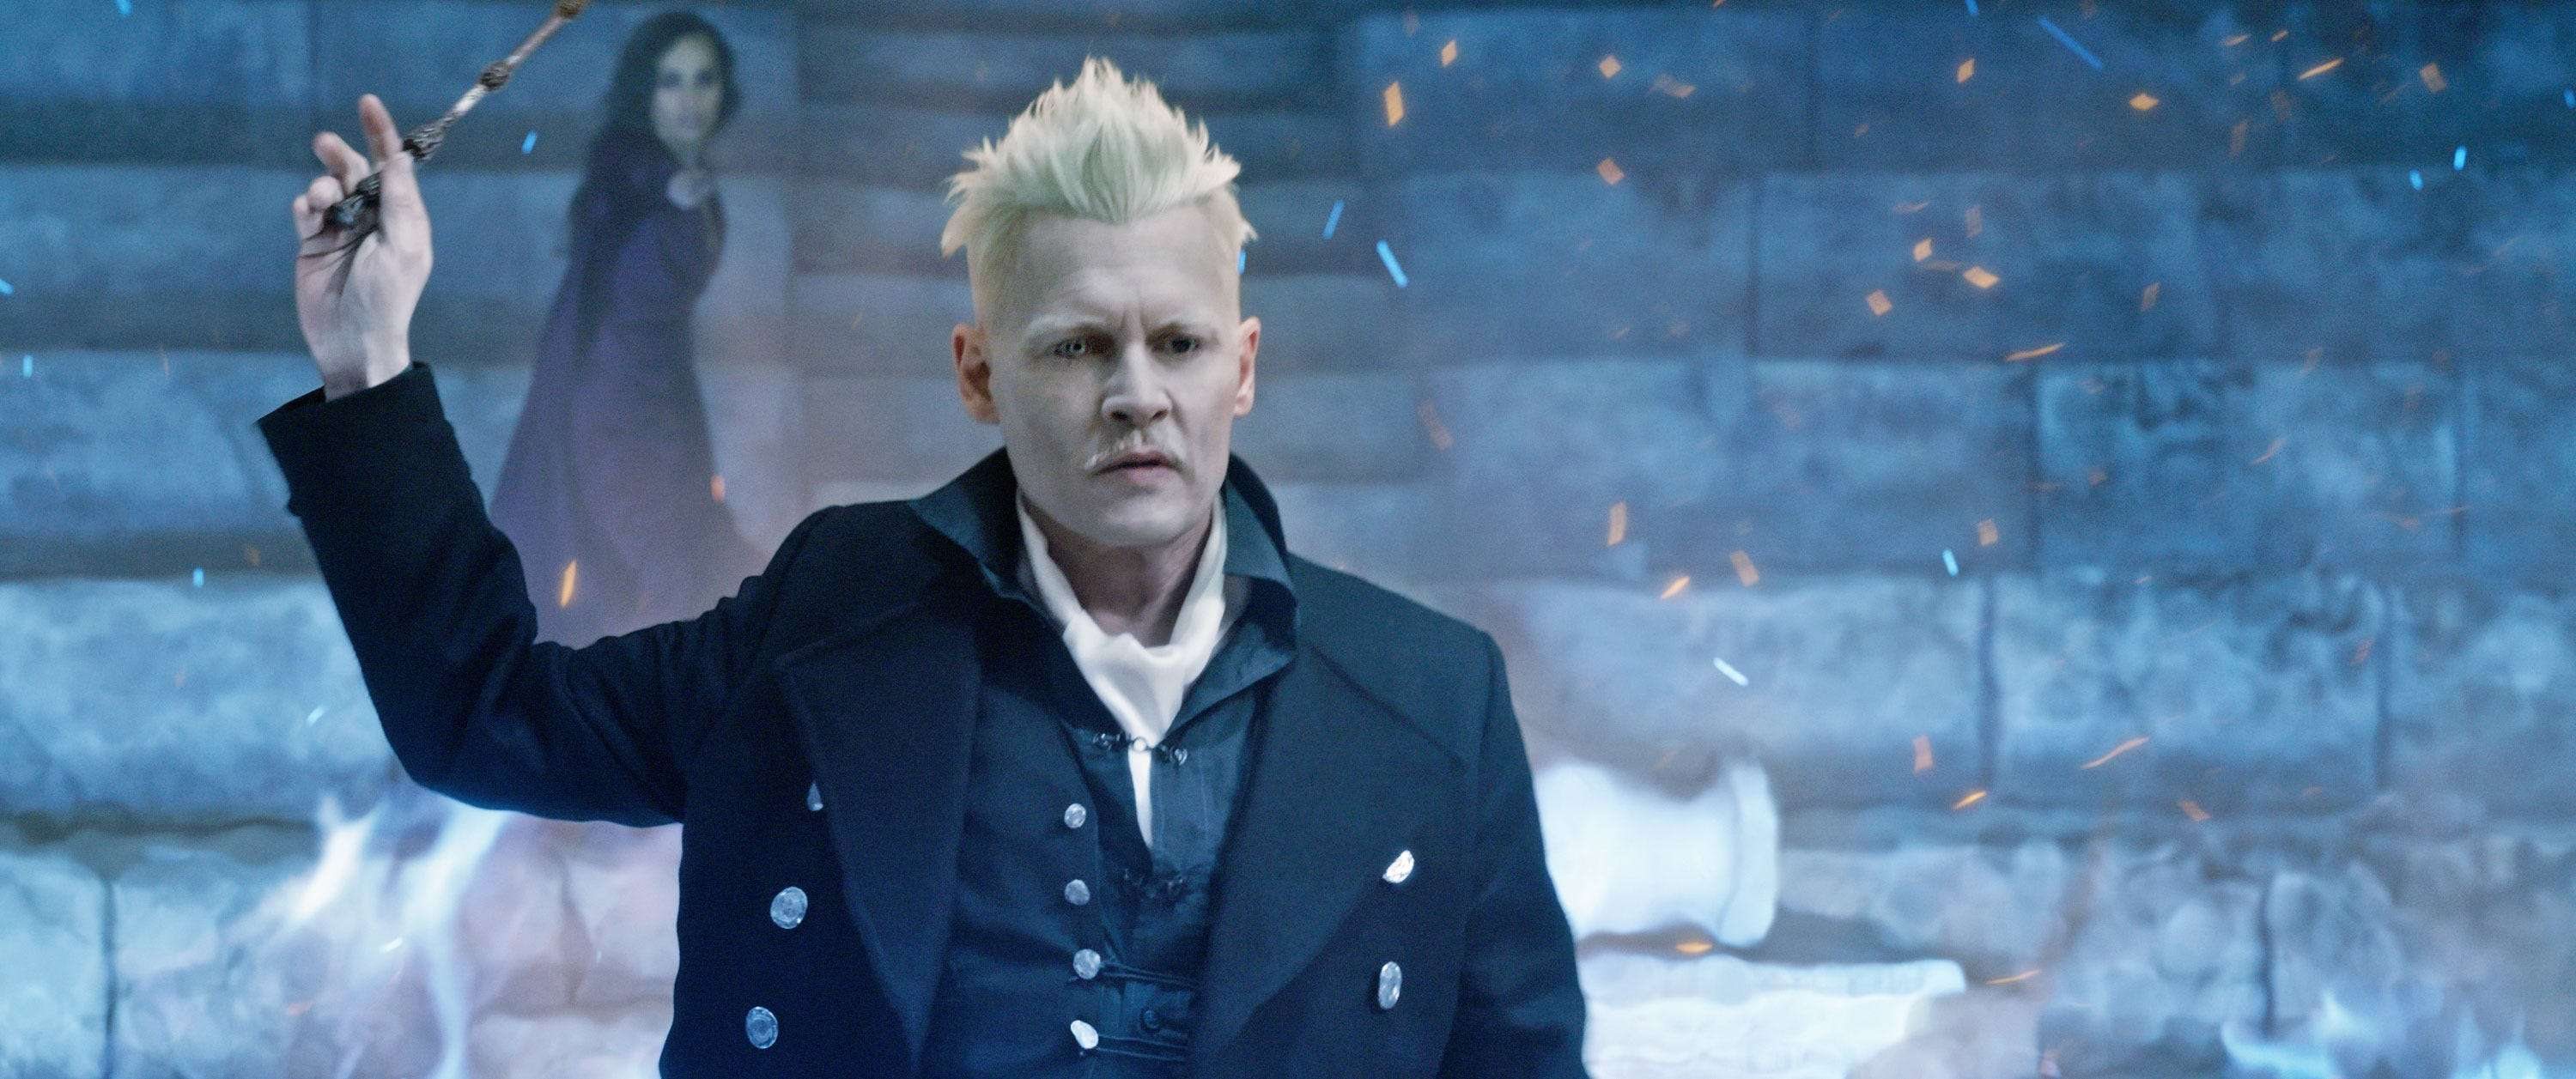 'Fantastic Beasts' is just the start. Johnny Depp's career is over, experts say.